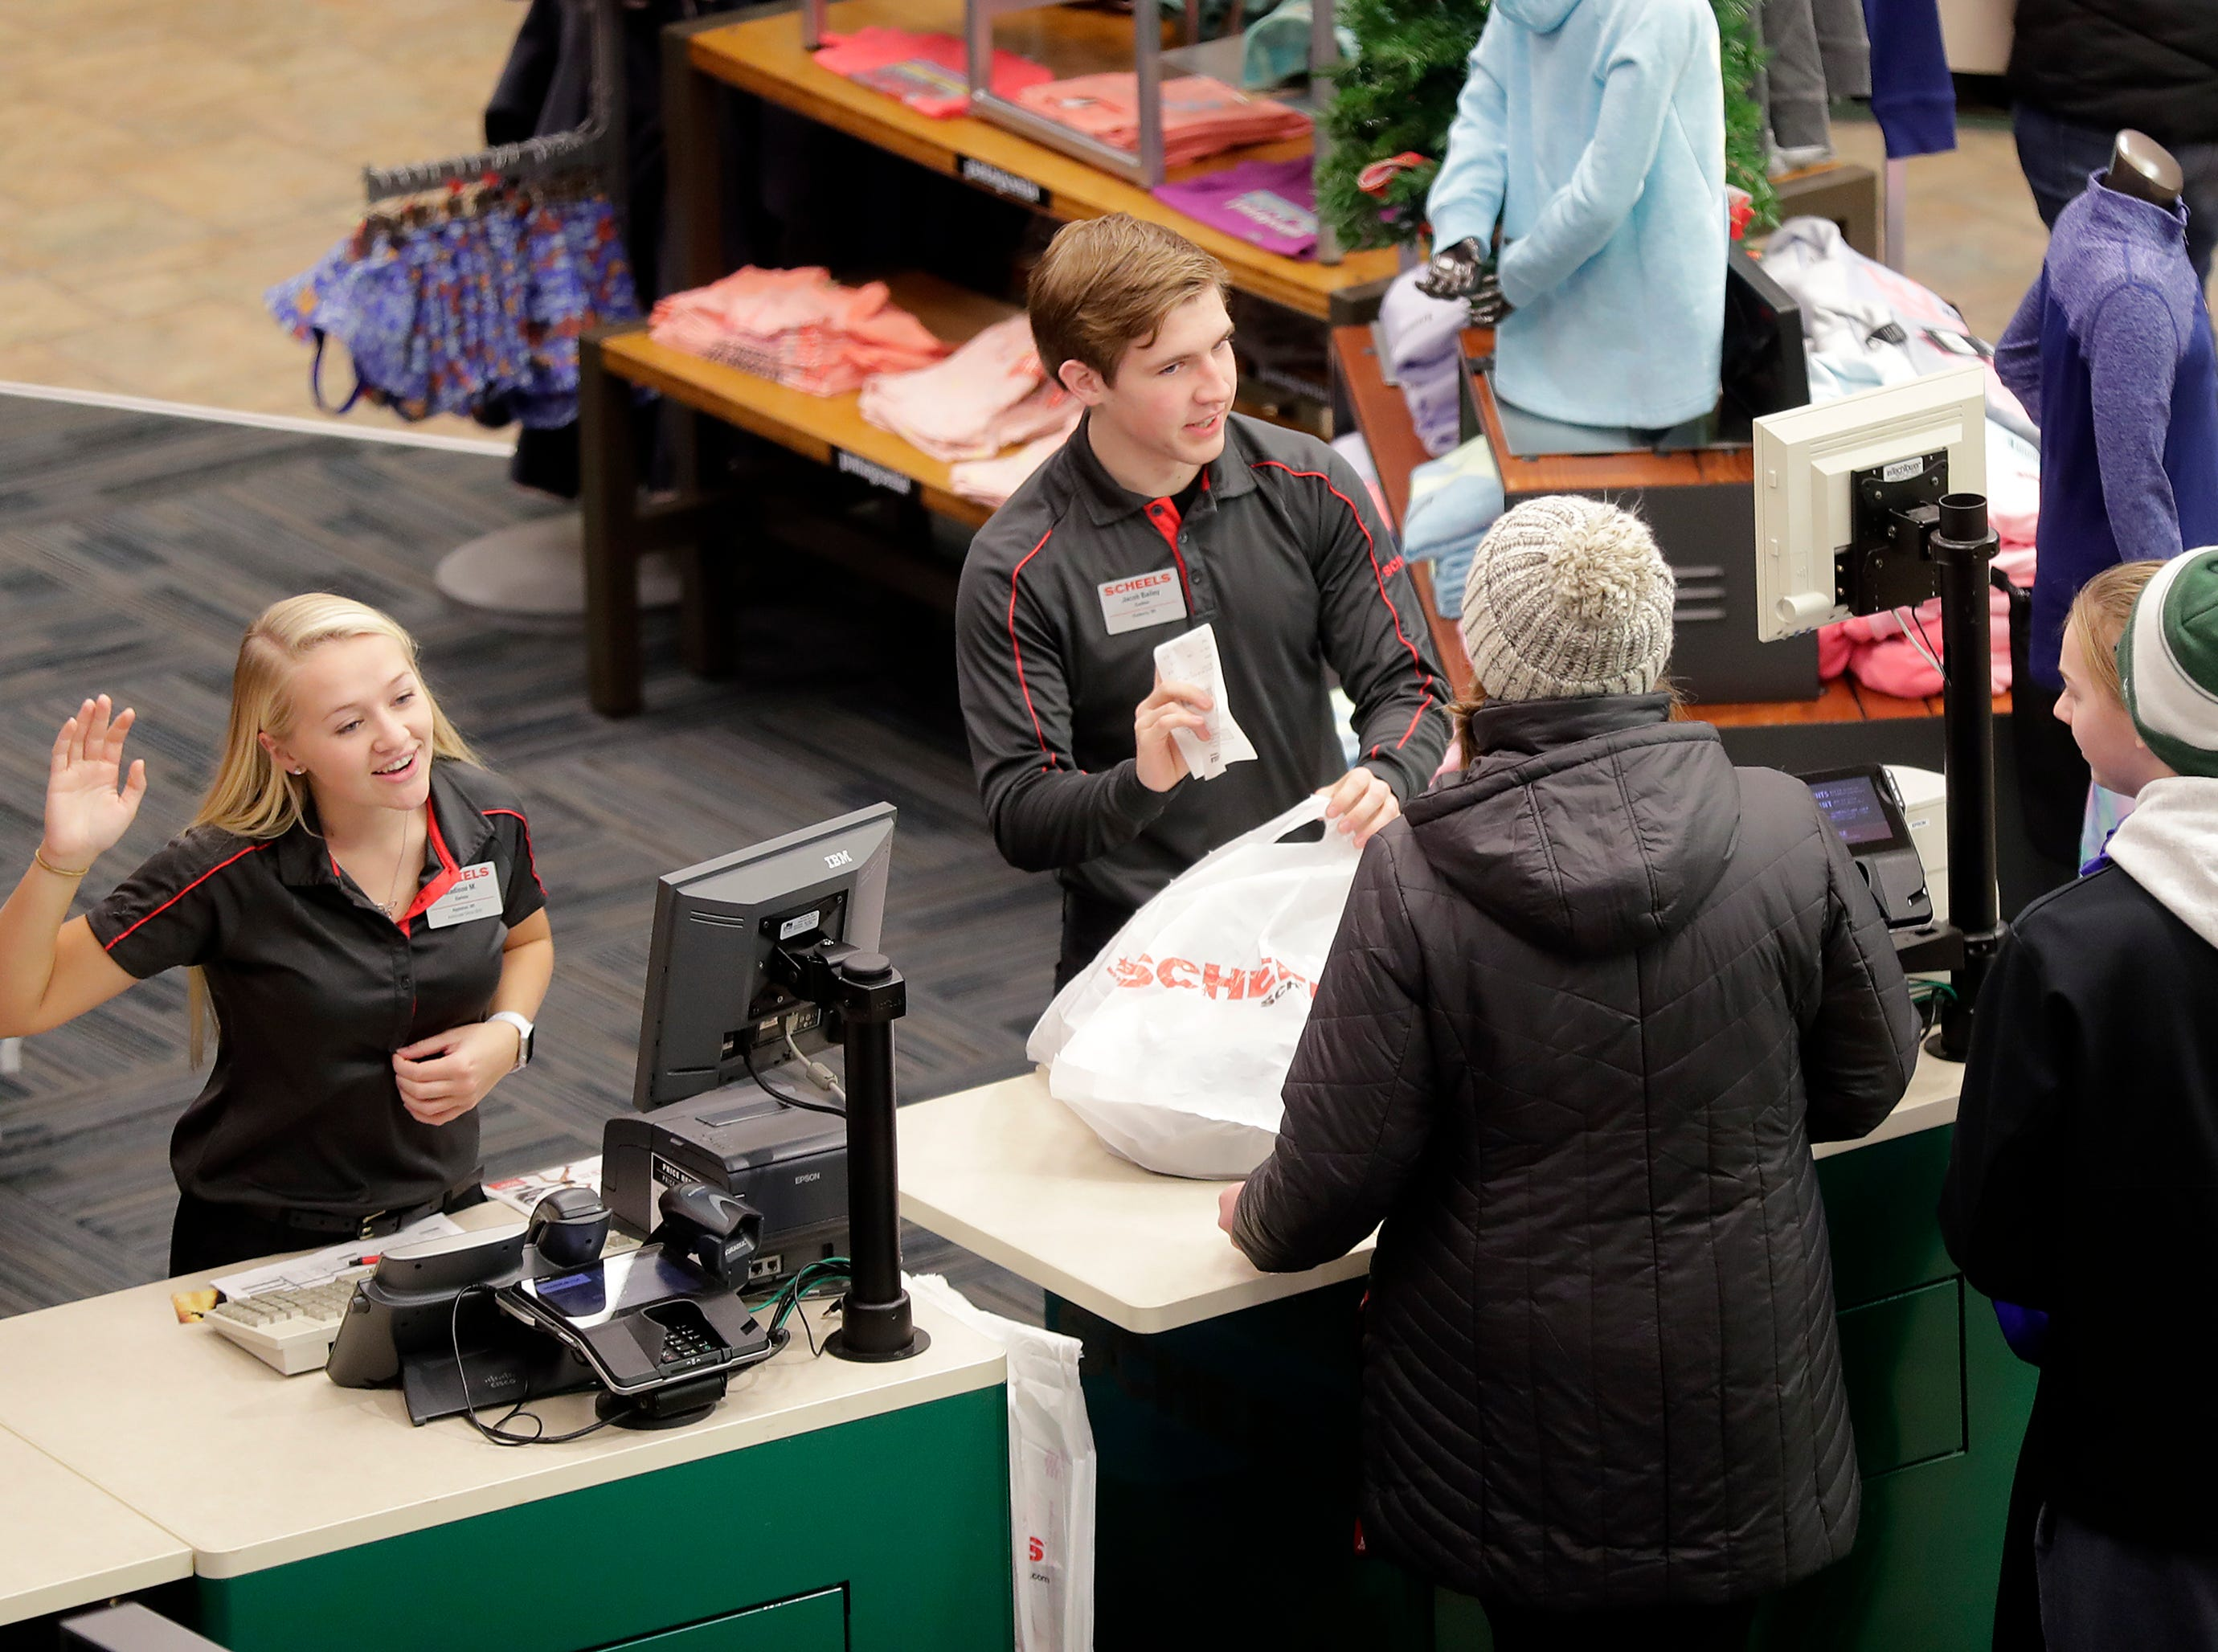 Madison Maloney, left, and Jacob Bailey work the registers as shoppers looking for Black Friday deals at Scheels on Friday, Nov. 23, 2018 in Grand Chute, Wis